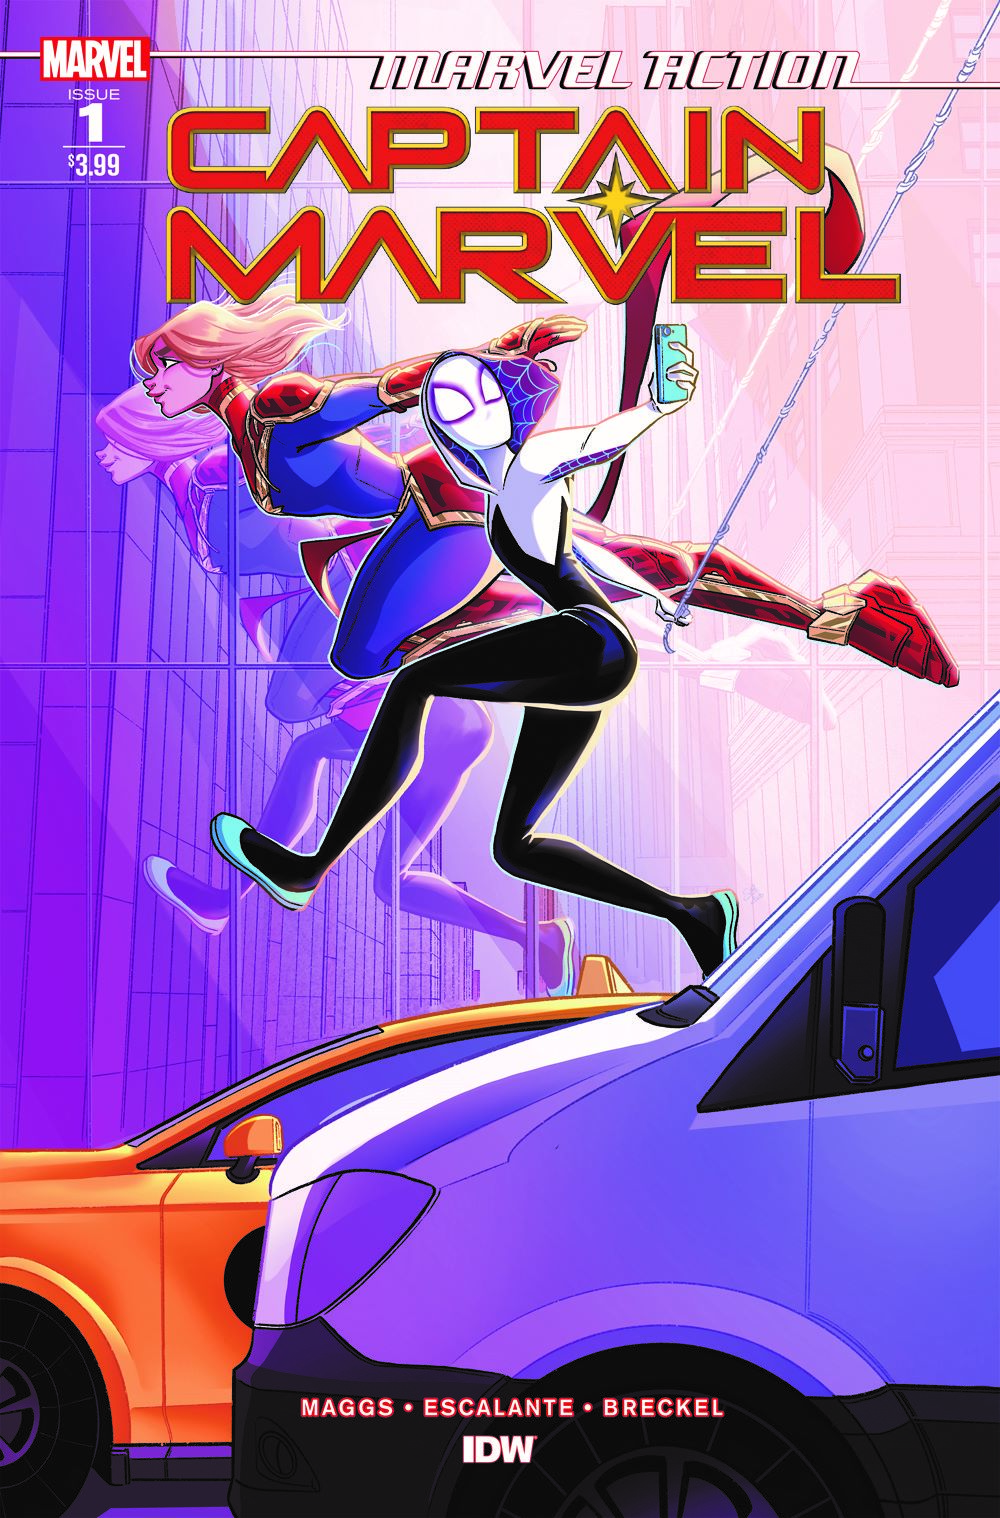 CaptainMarvel_Acvr_01 ComicList: IDW Publishing New Releases for 03/03/2021